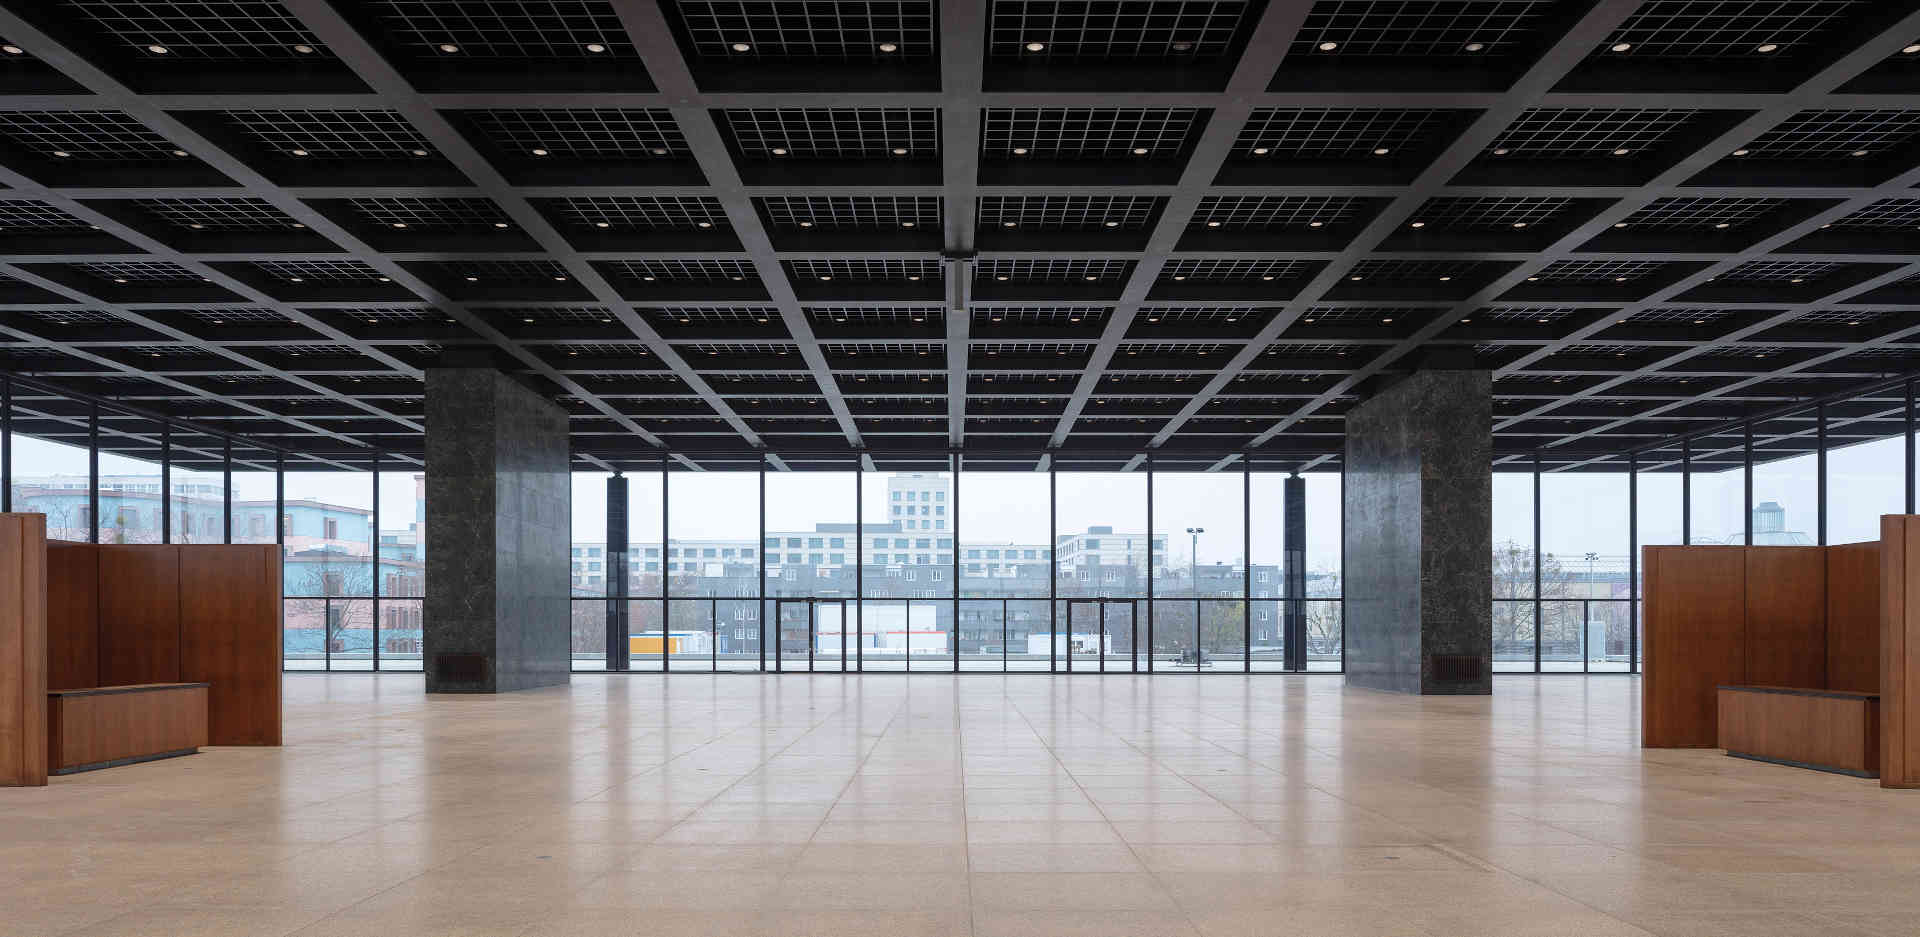 The original construction elements, such as the ceiling grids and stone panels in the Neue Nationalgalerie's upper exhibition hall, have been carefully restored.